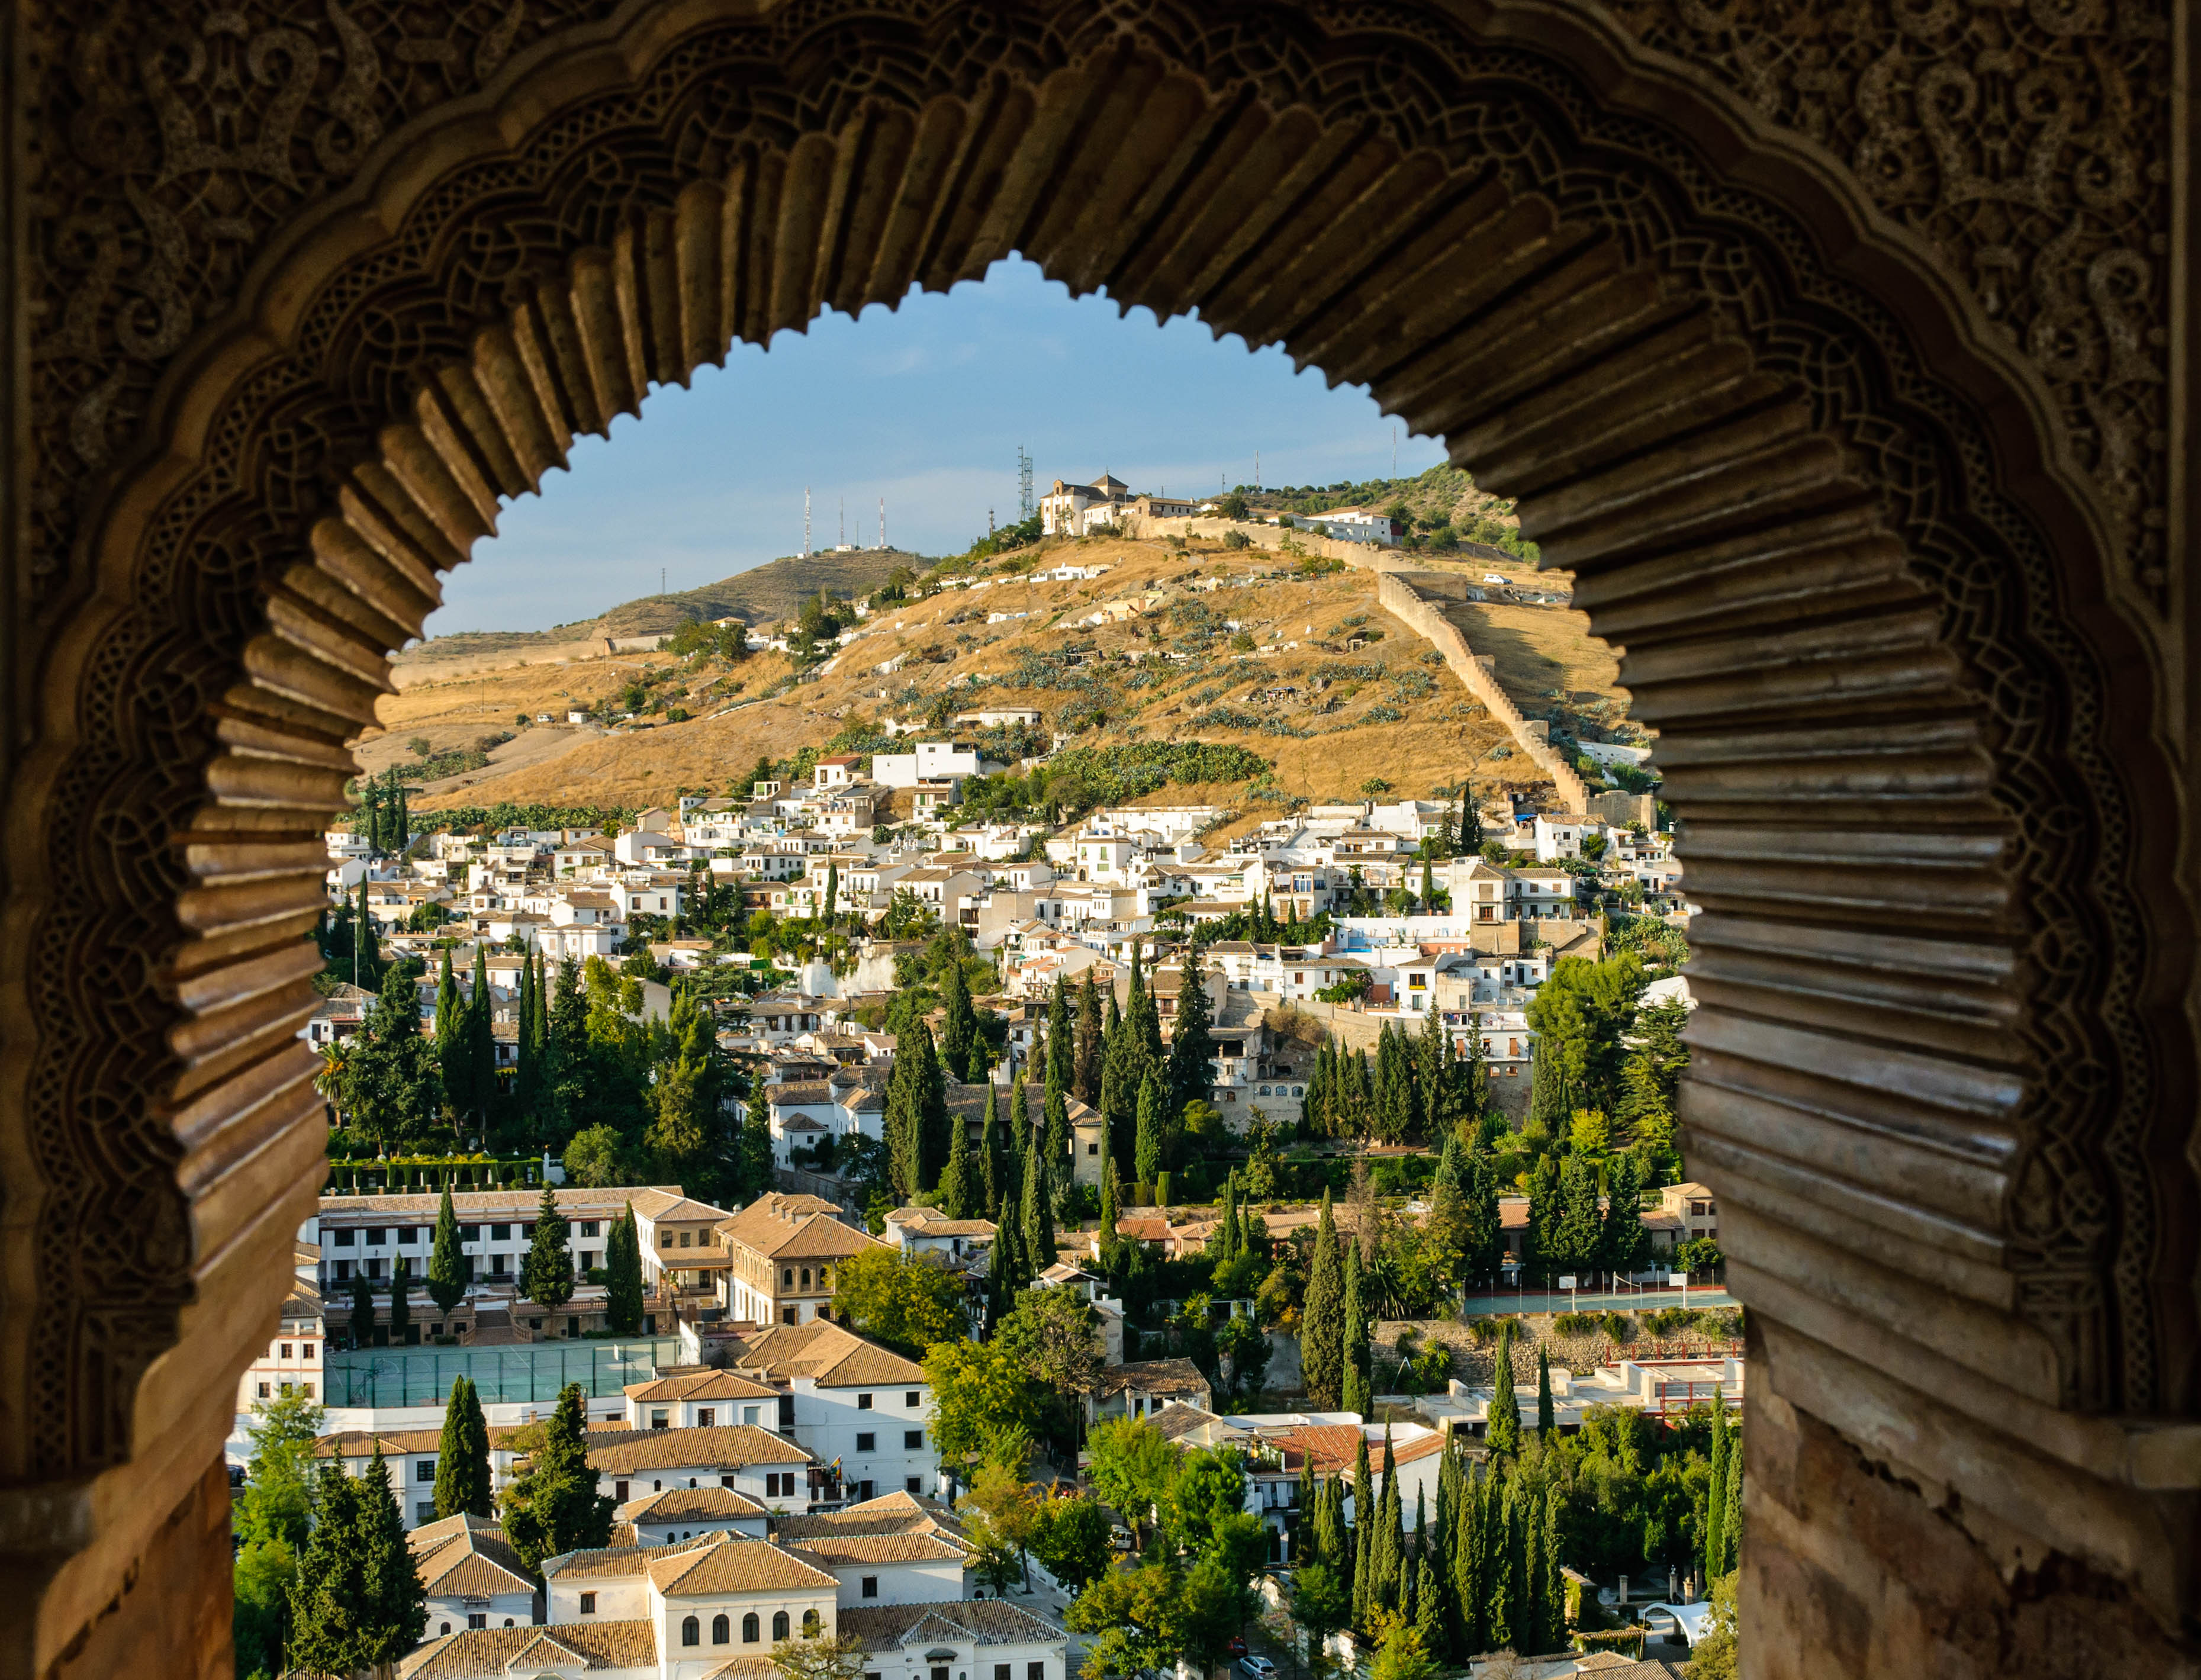 View of the typical white houses of the districts of Albaicin and Sacromonte from the Nasrid Palace (part of the Alhambra complex) in Granada, Spain